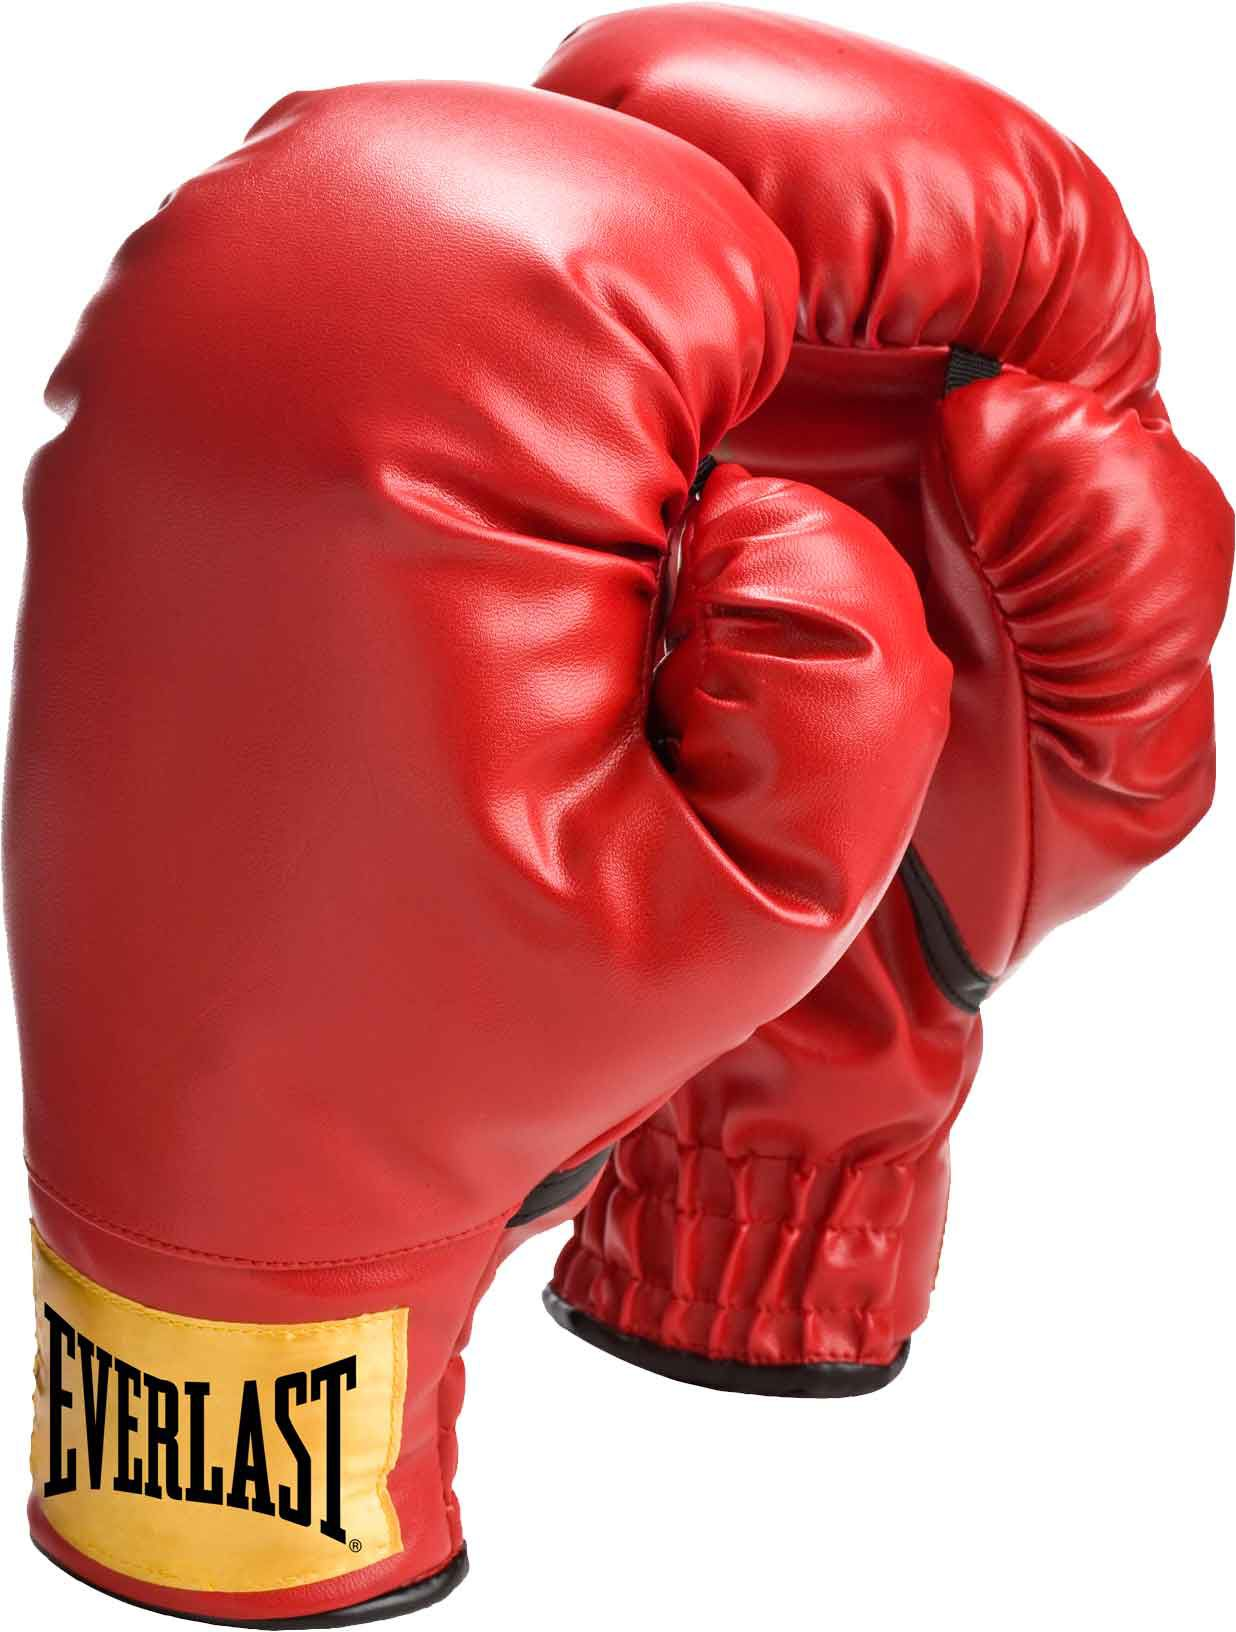 How To Draw A Boxing Glove Microsoft Wiring Diagrams